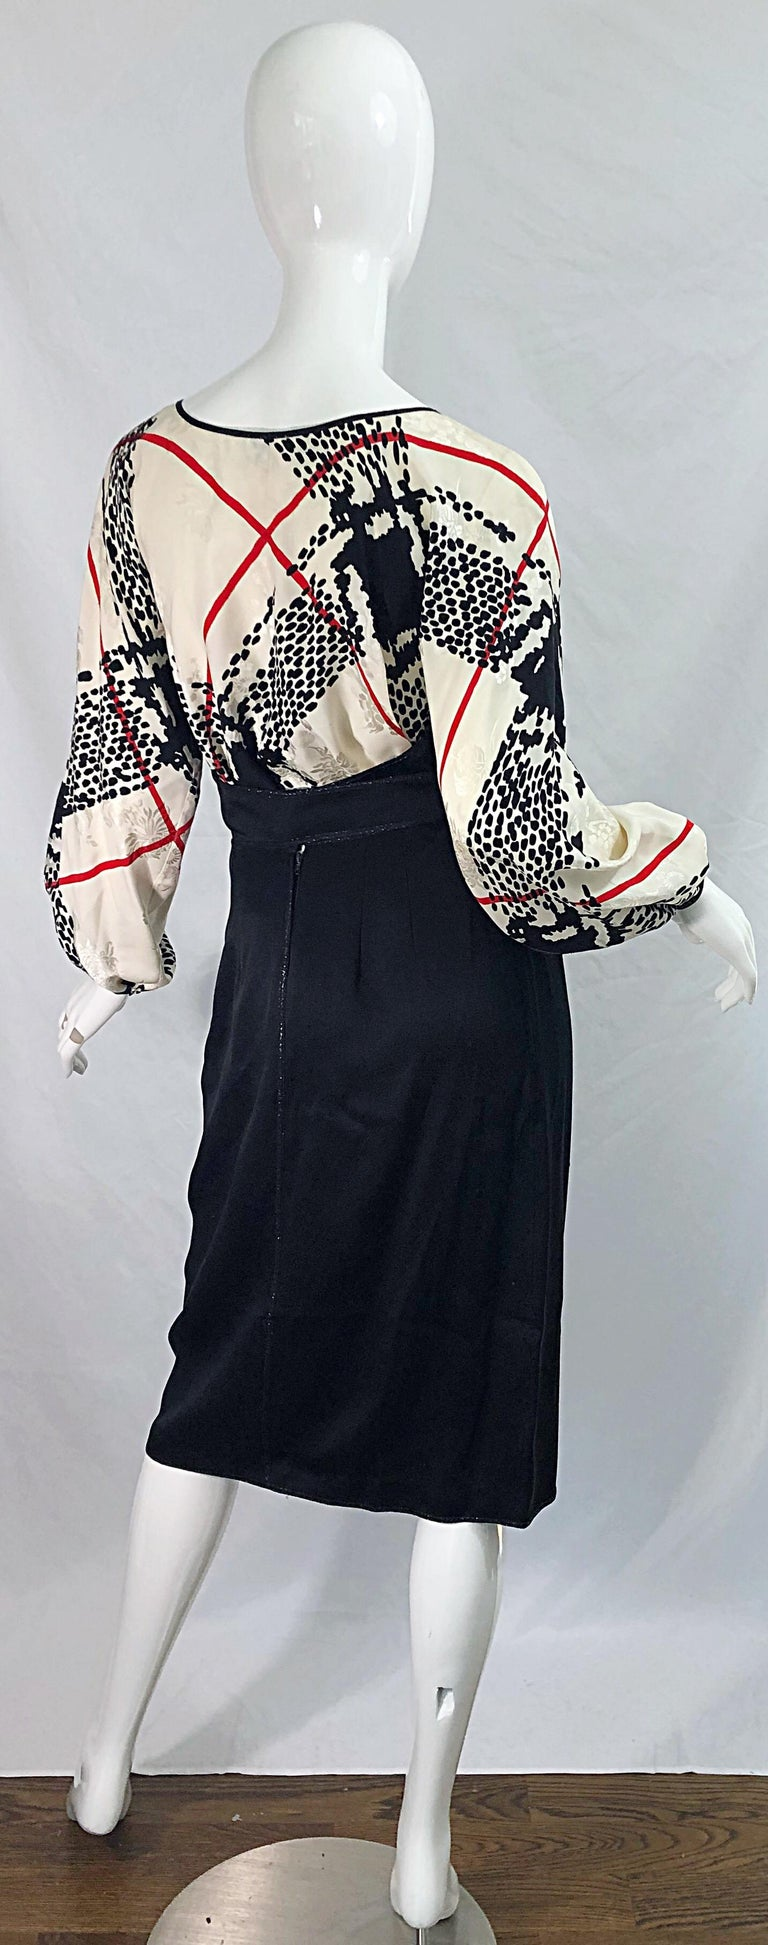 Women's Vintage Geoffrey Beene Size 6 Houndstooth Black + White + Red Silk 80s Dress For Sale